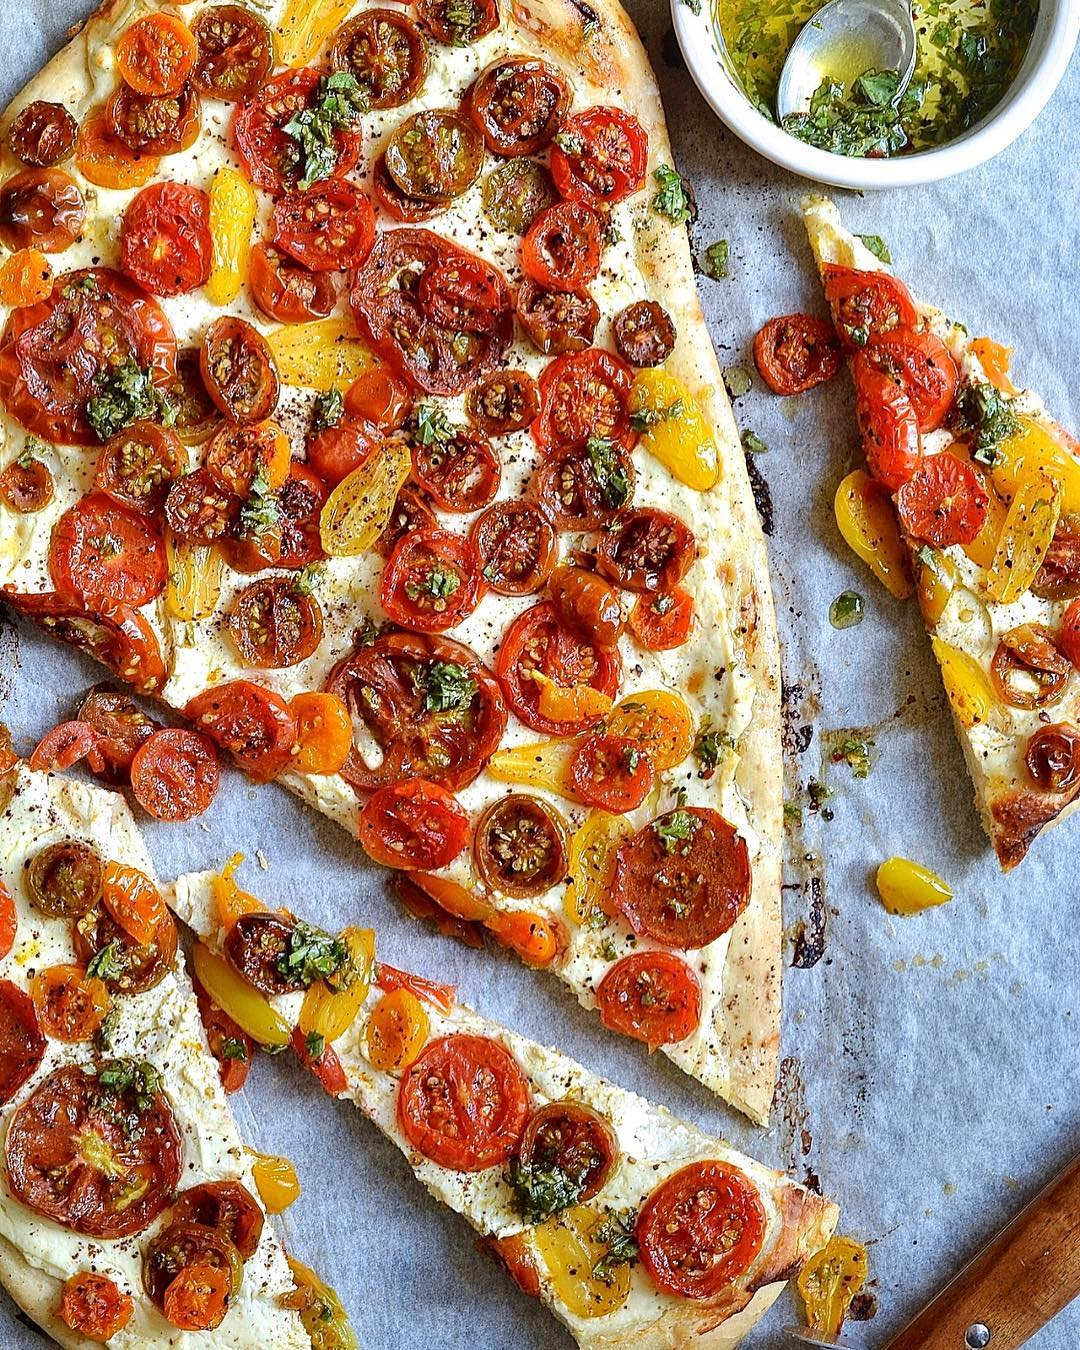 Lemon Ricotta, Sumac and Heirloom Tomato Flatbread